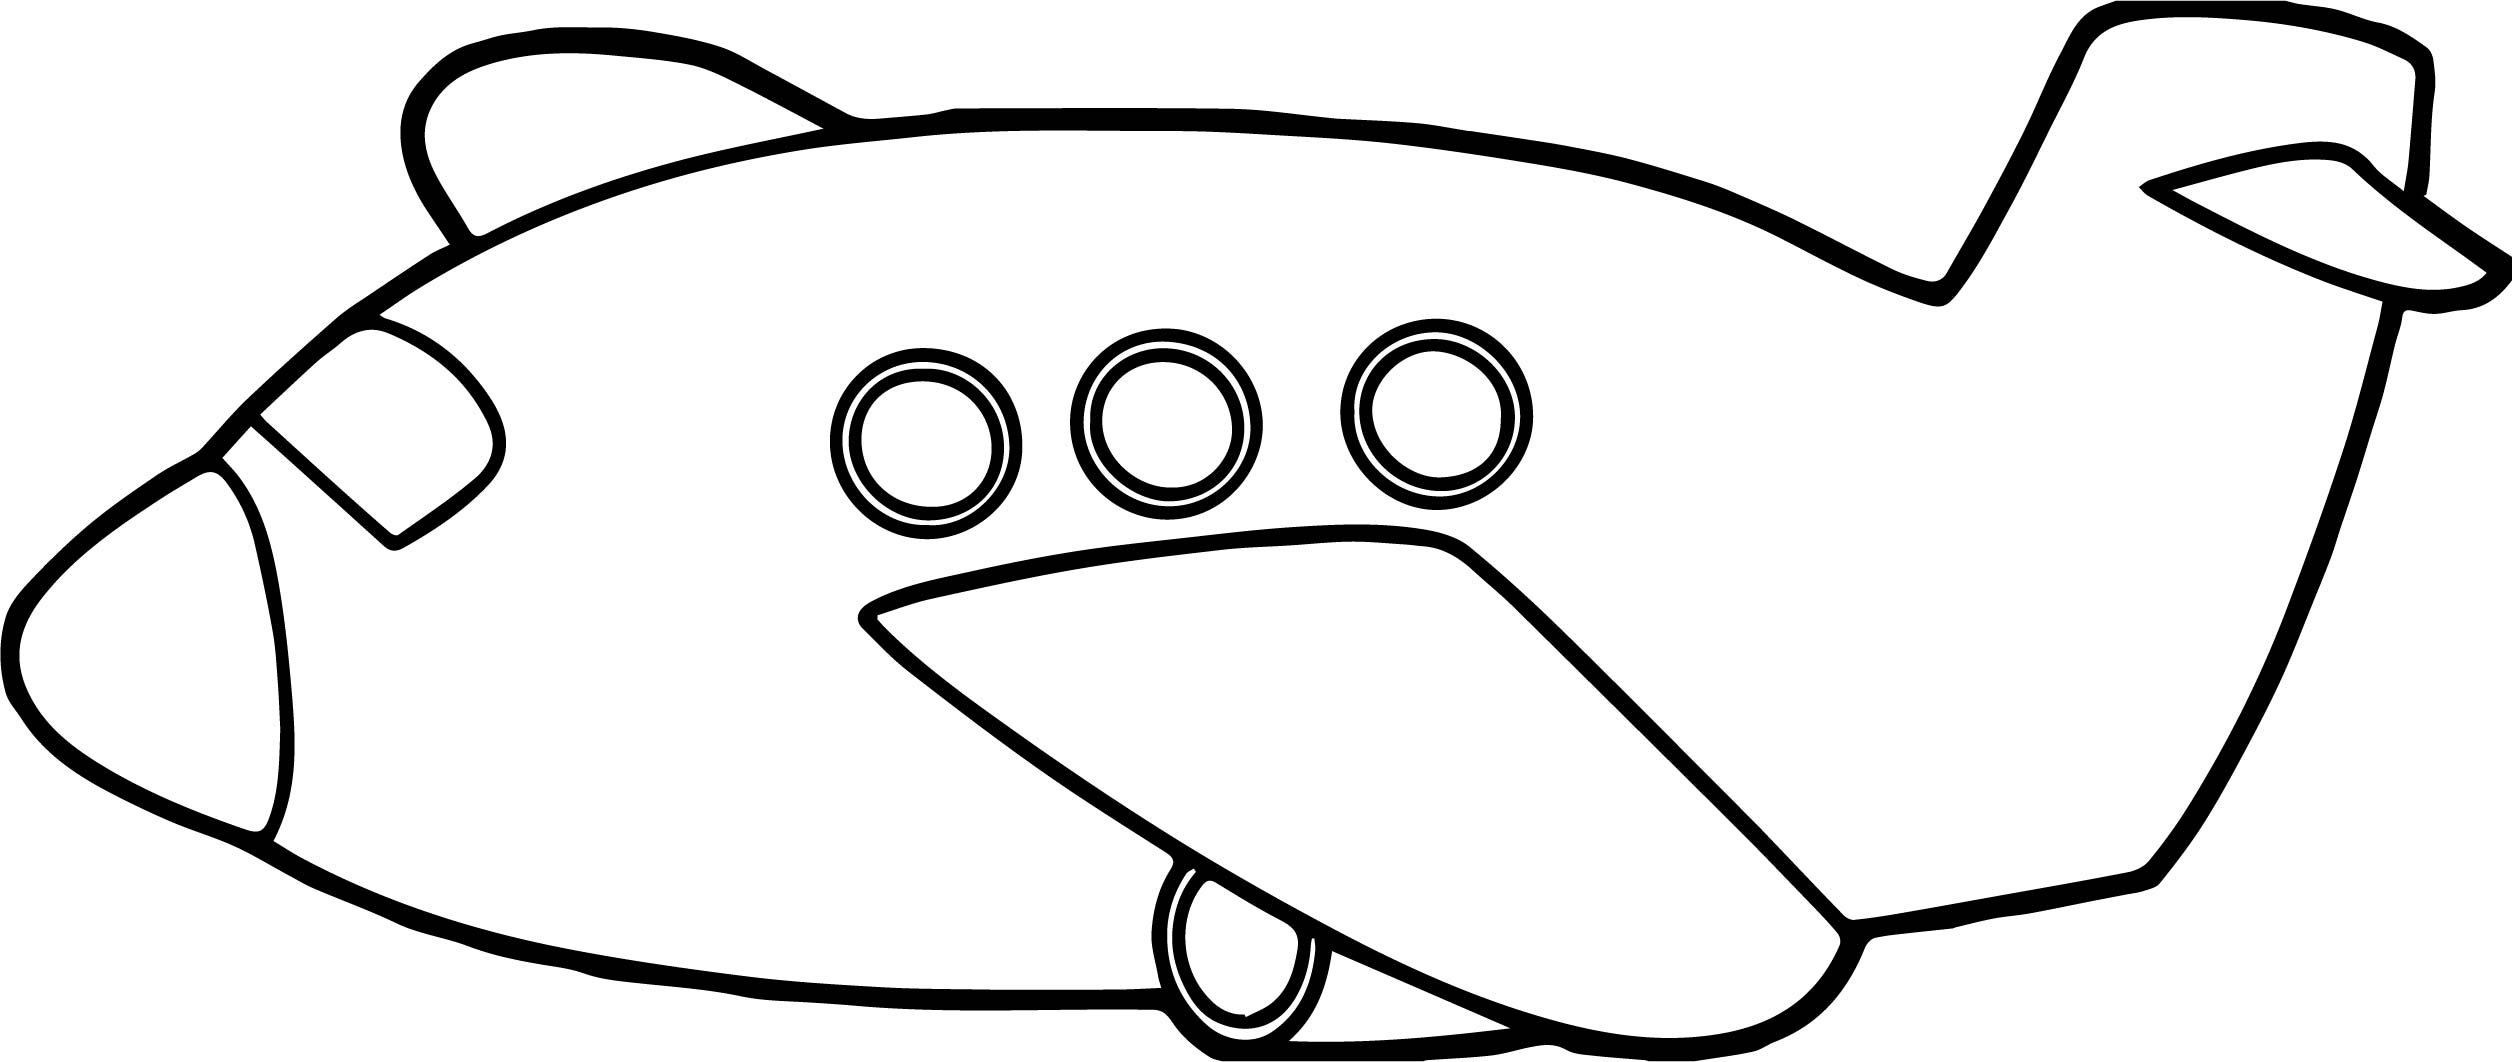 Plane Outline Drawing